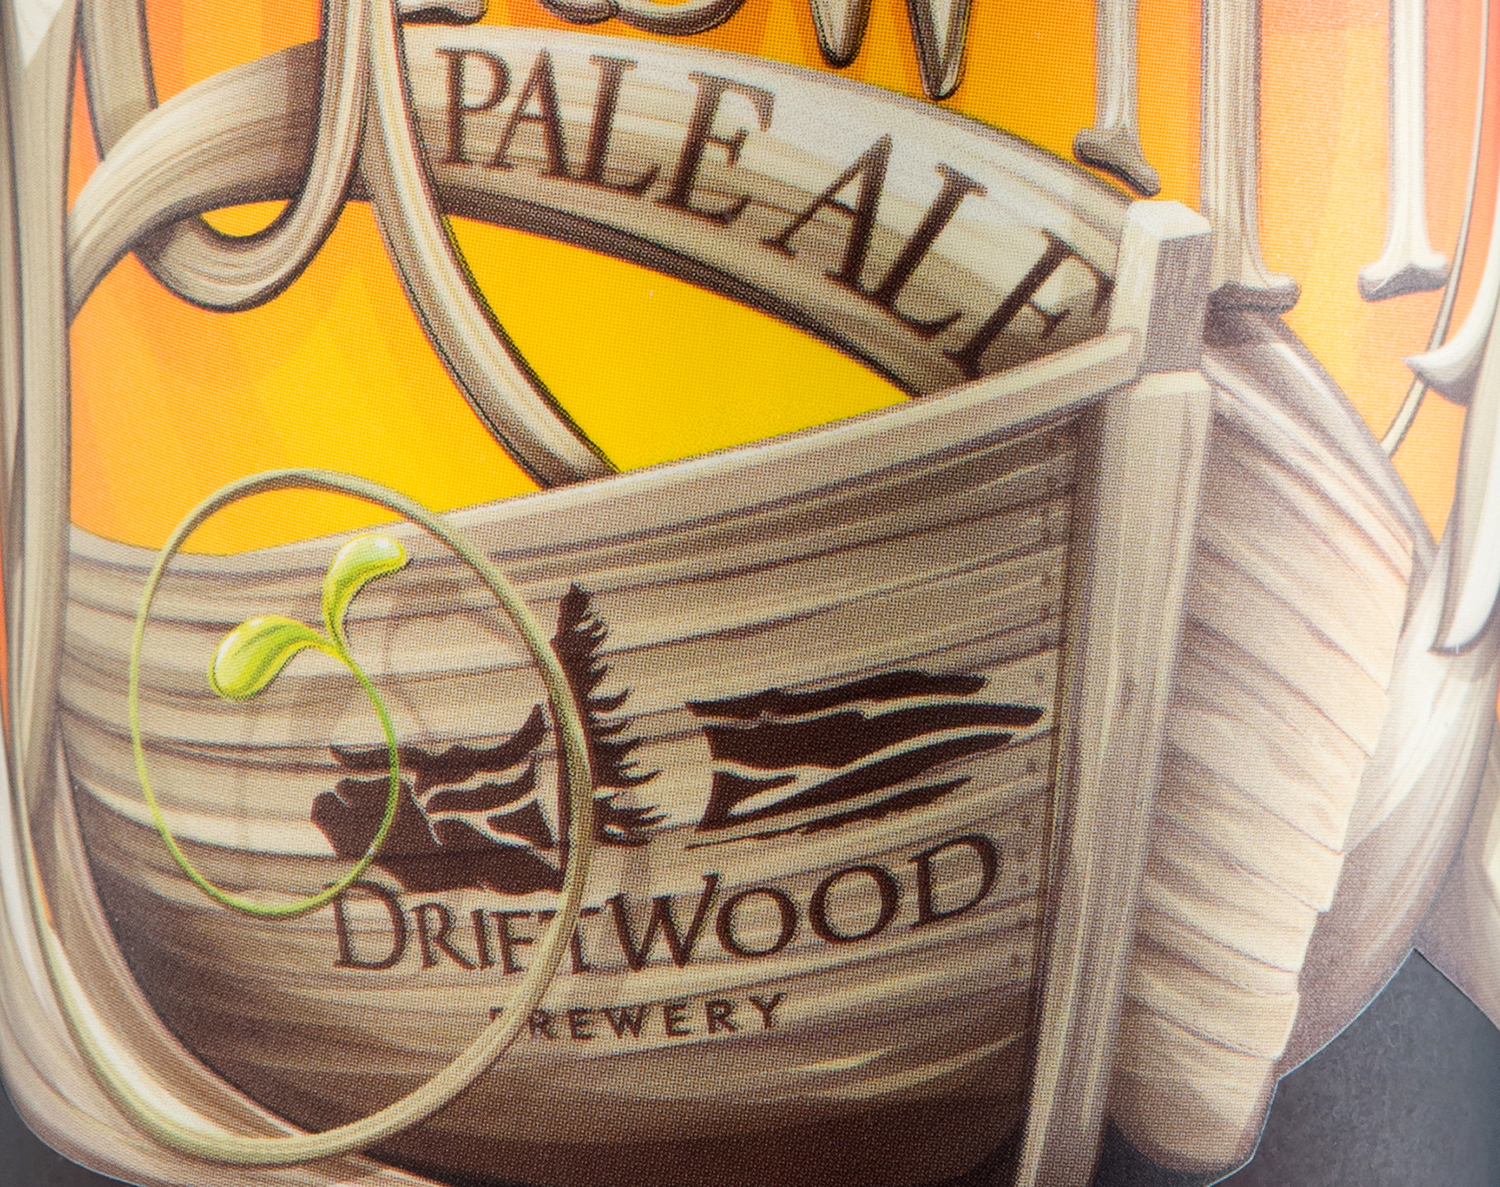 Packaging Design for Driftwood Brewery's New Growth Pale Ale